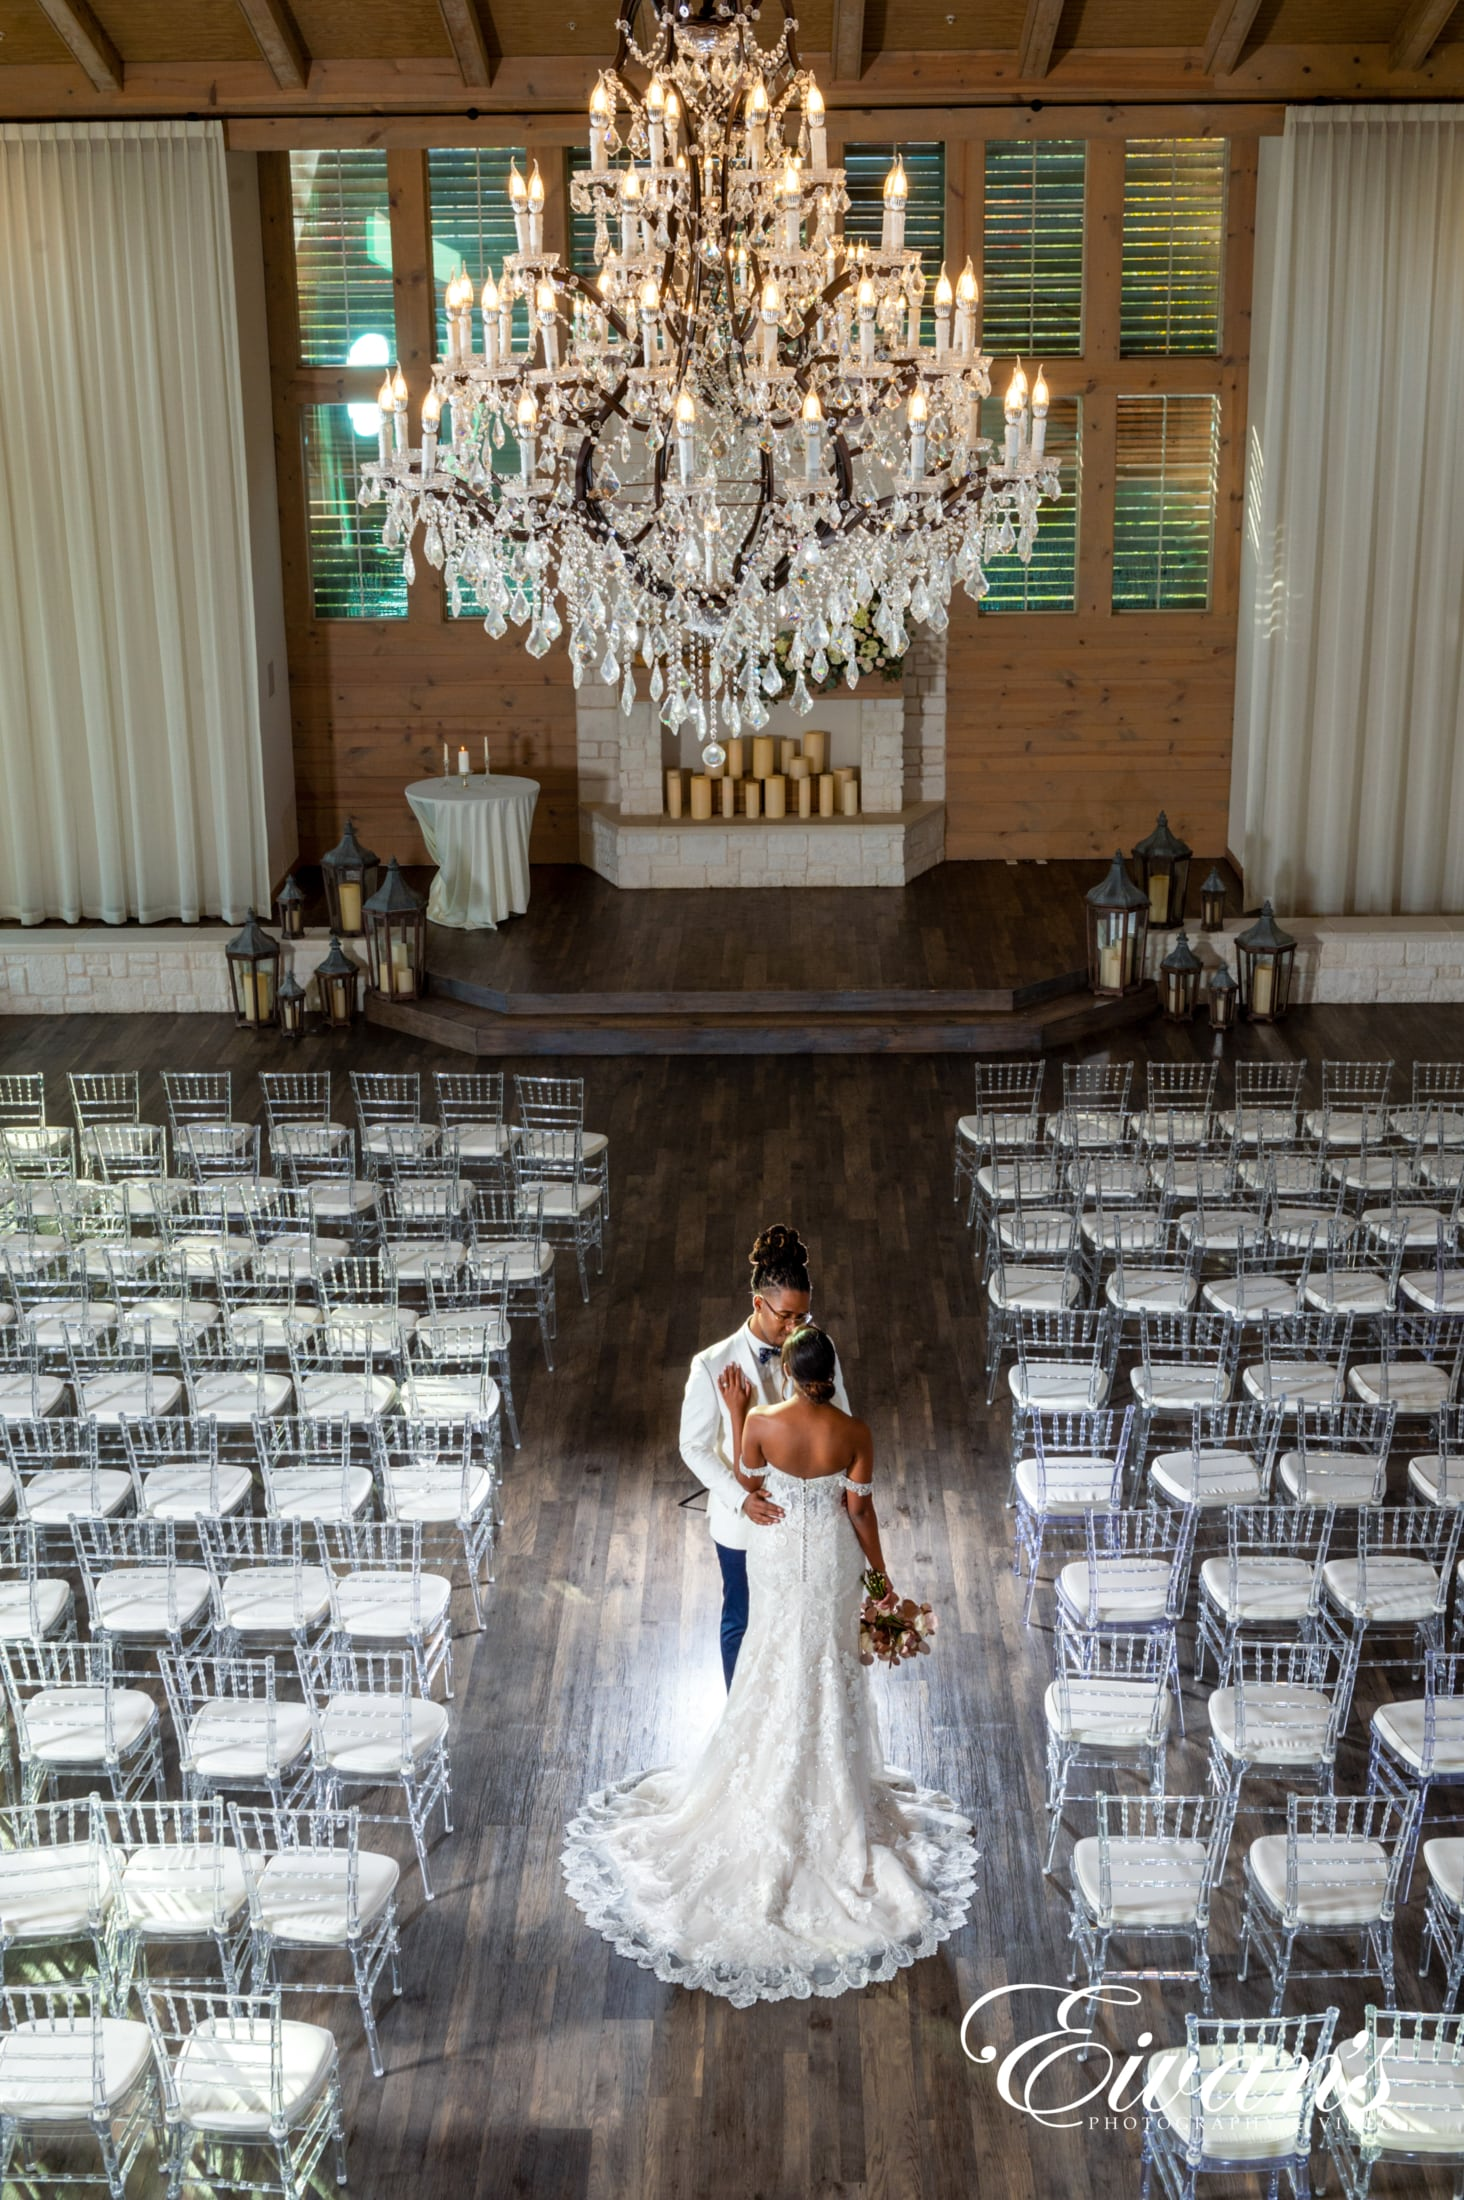 image of a married couple at their wedding venue